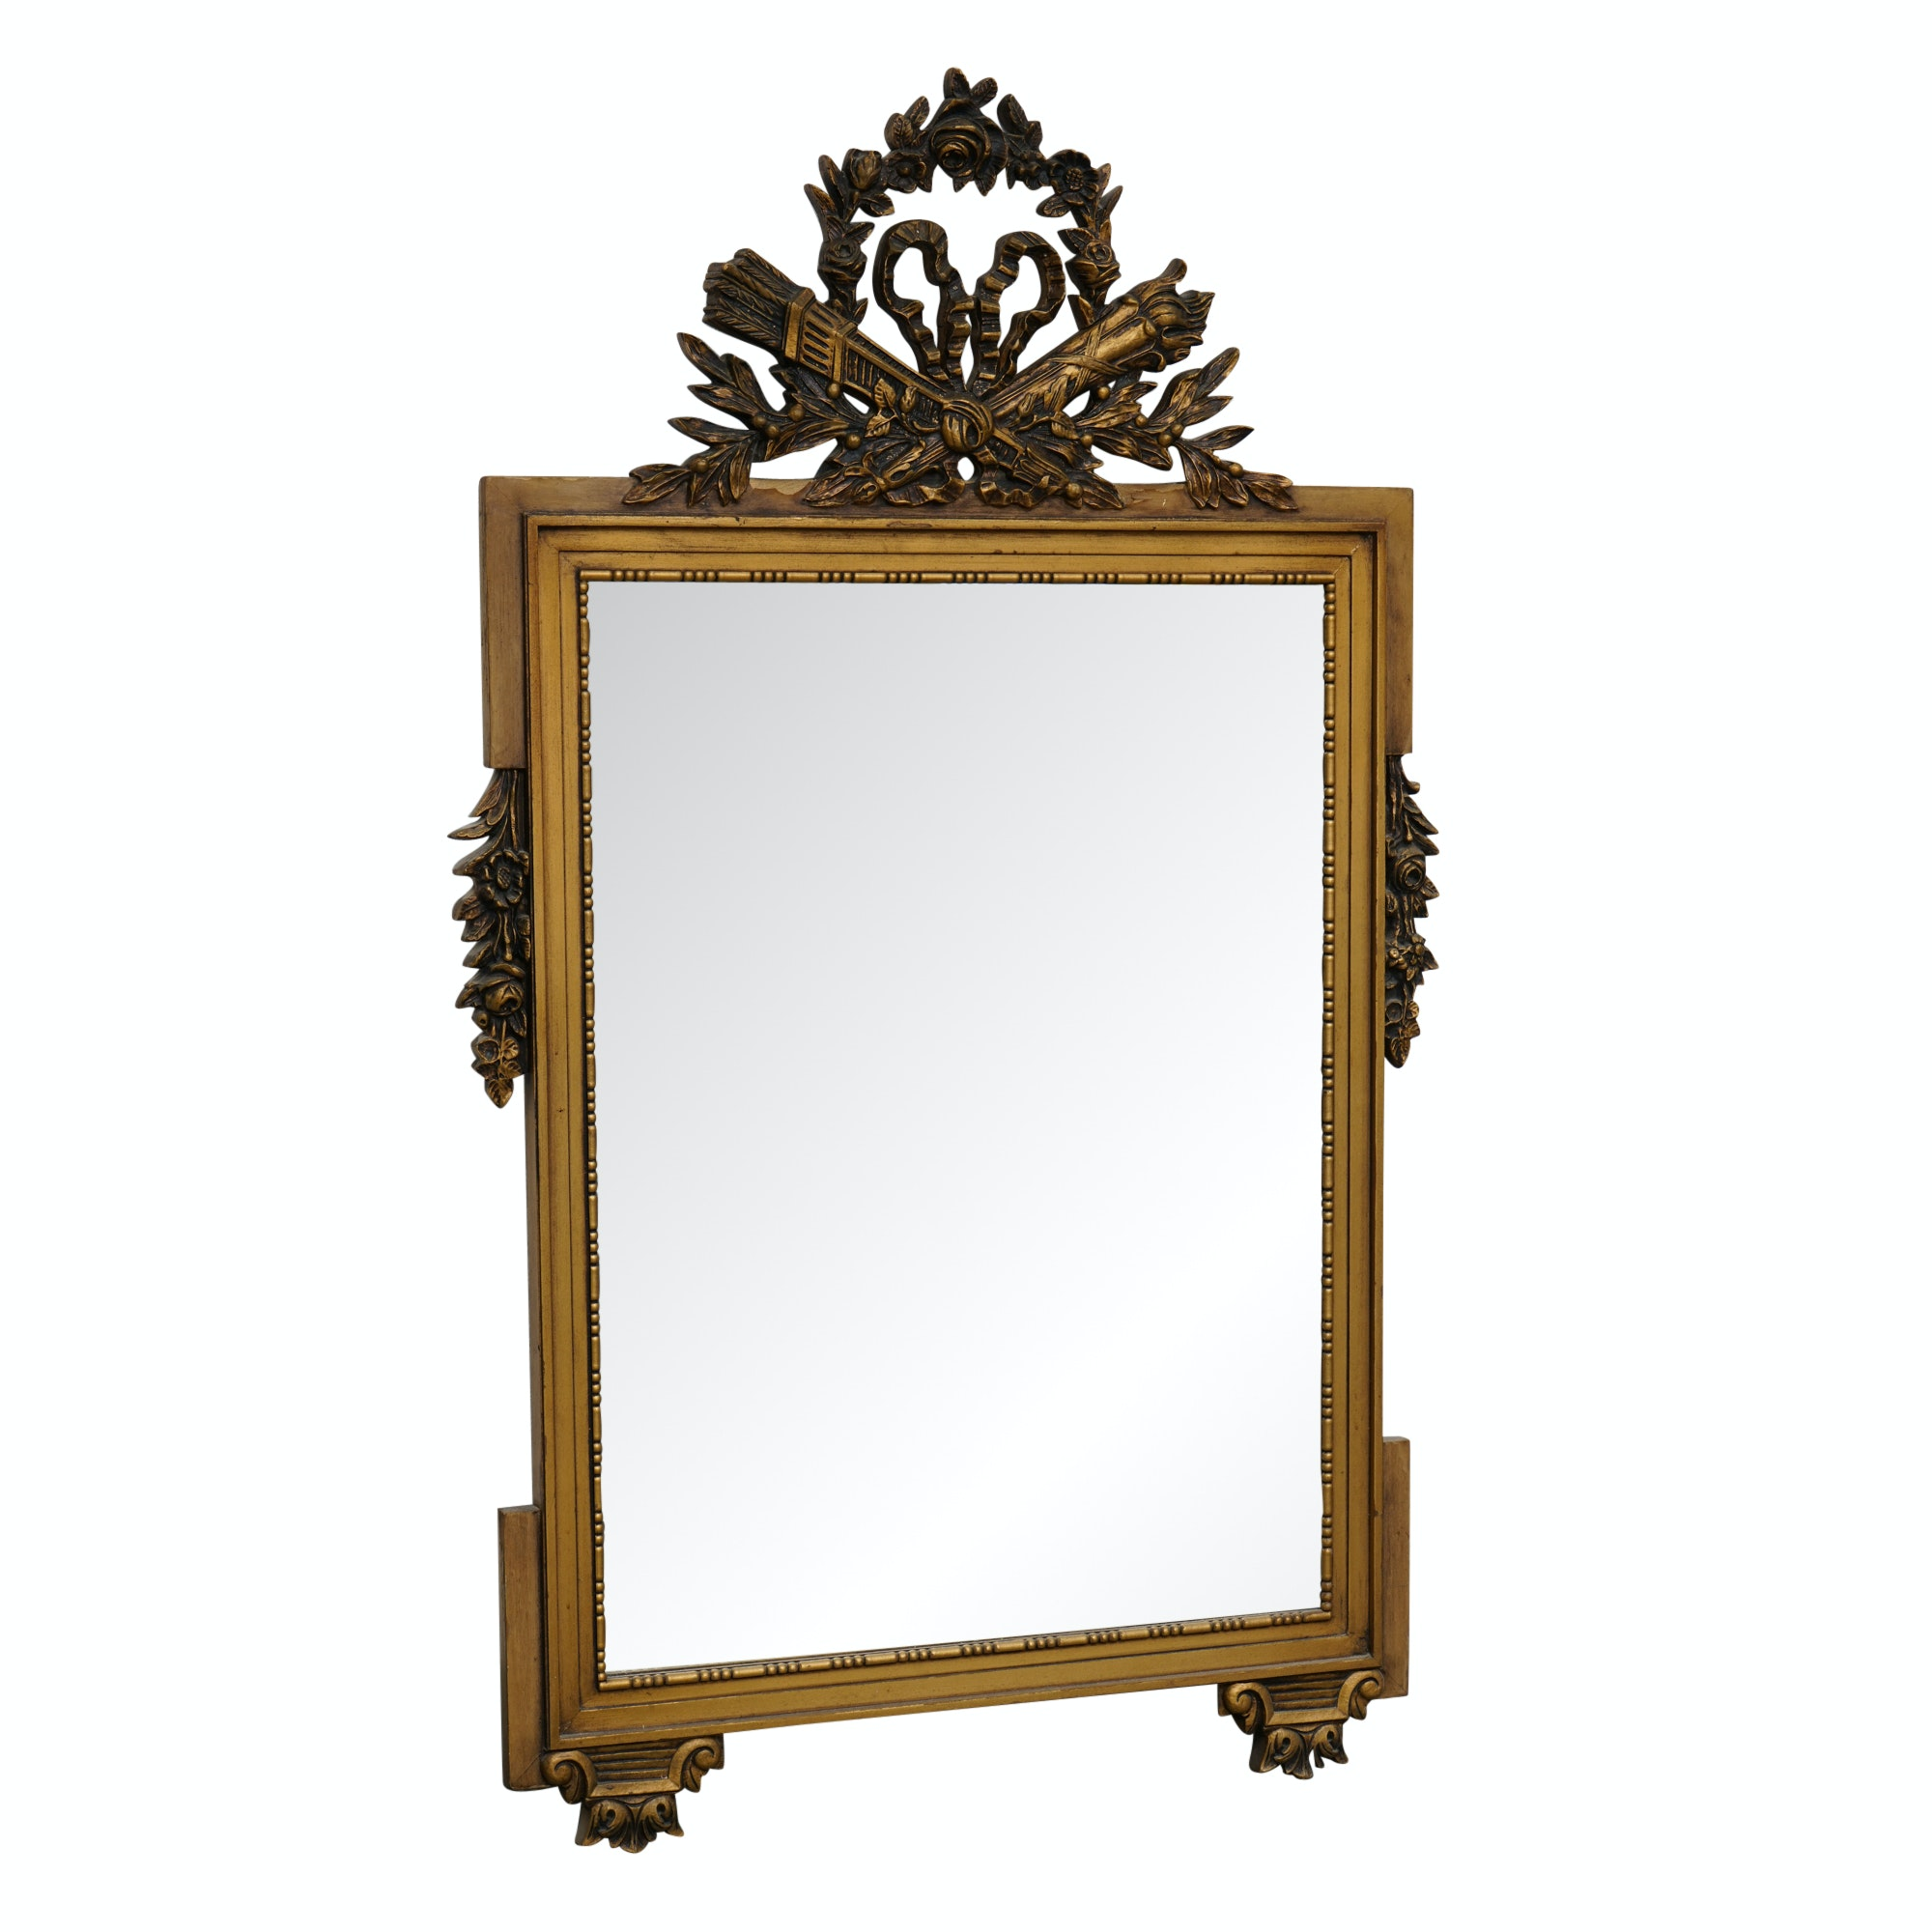 Vintage Empire Style Giltwood Wall Mirror